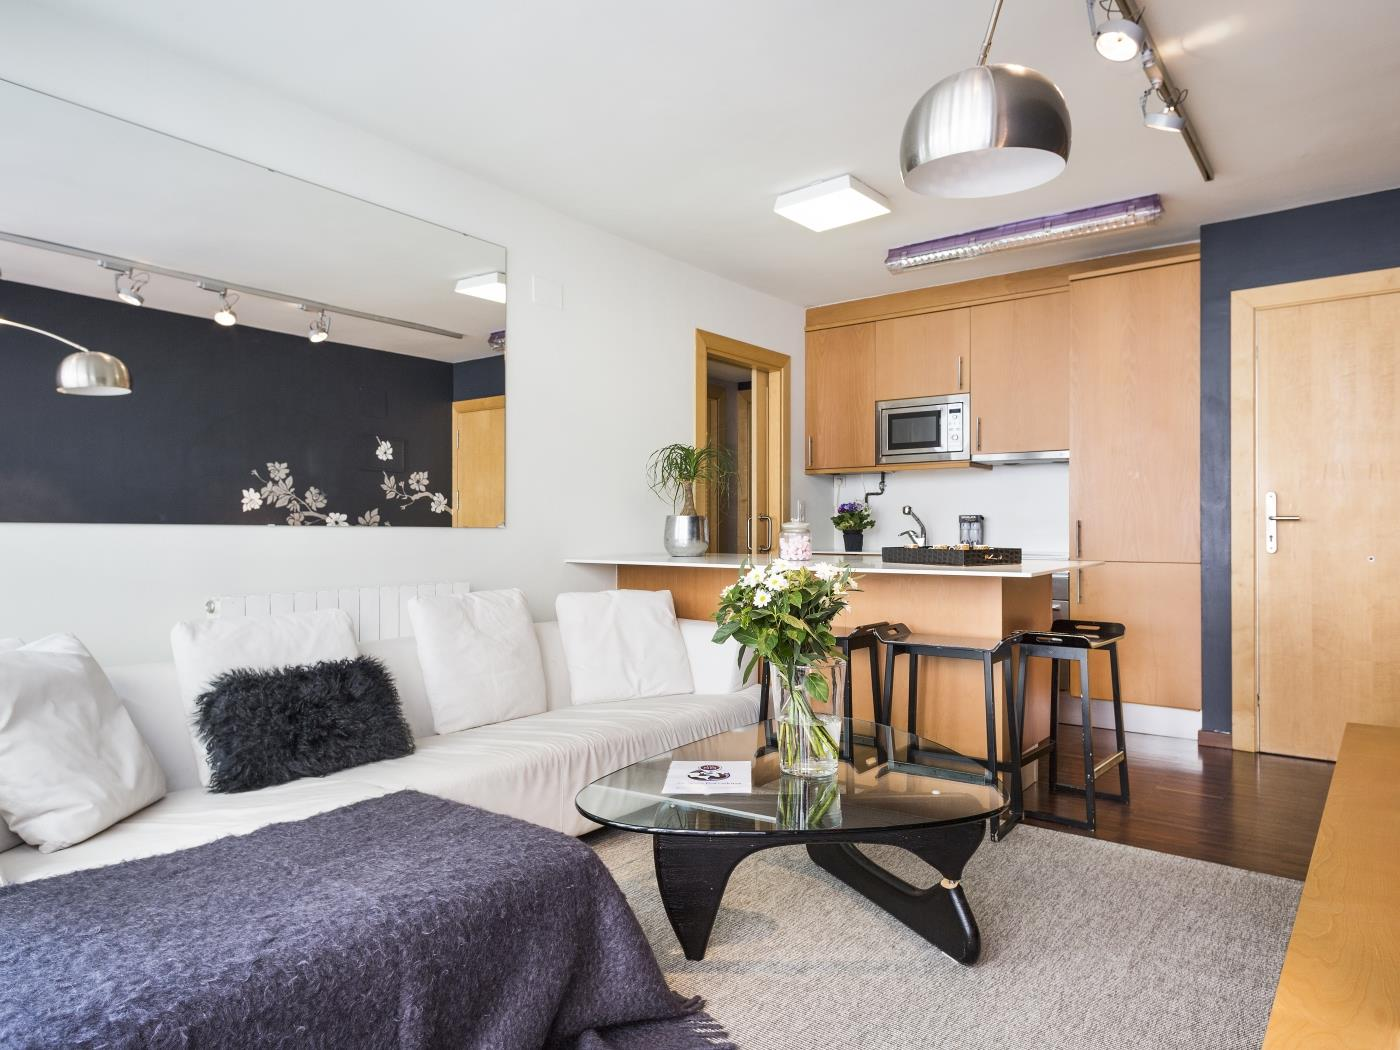 Executive Apartment near the City Center - My Space Barcelona Aпартаменты